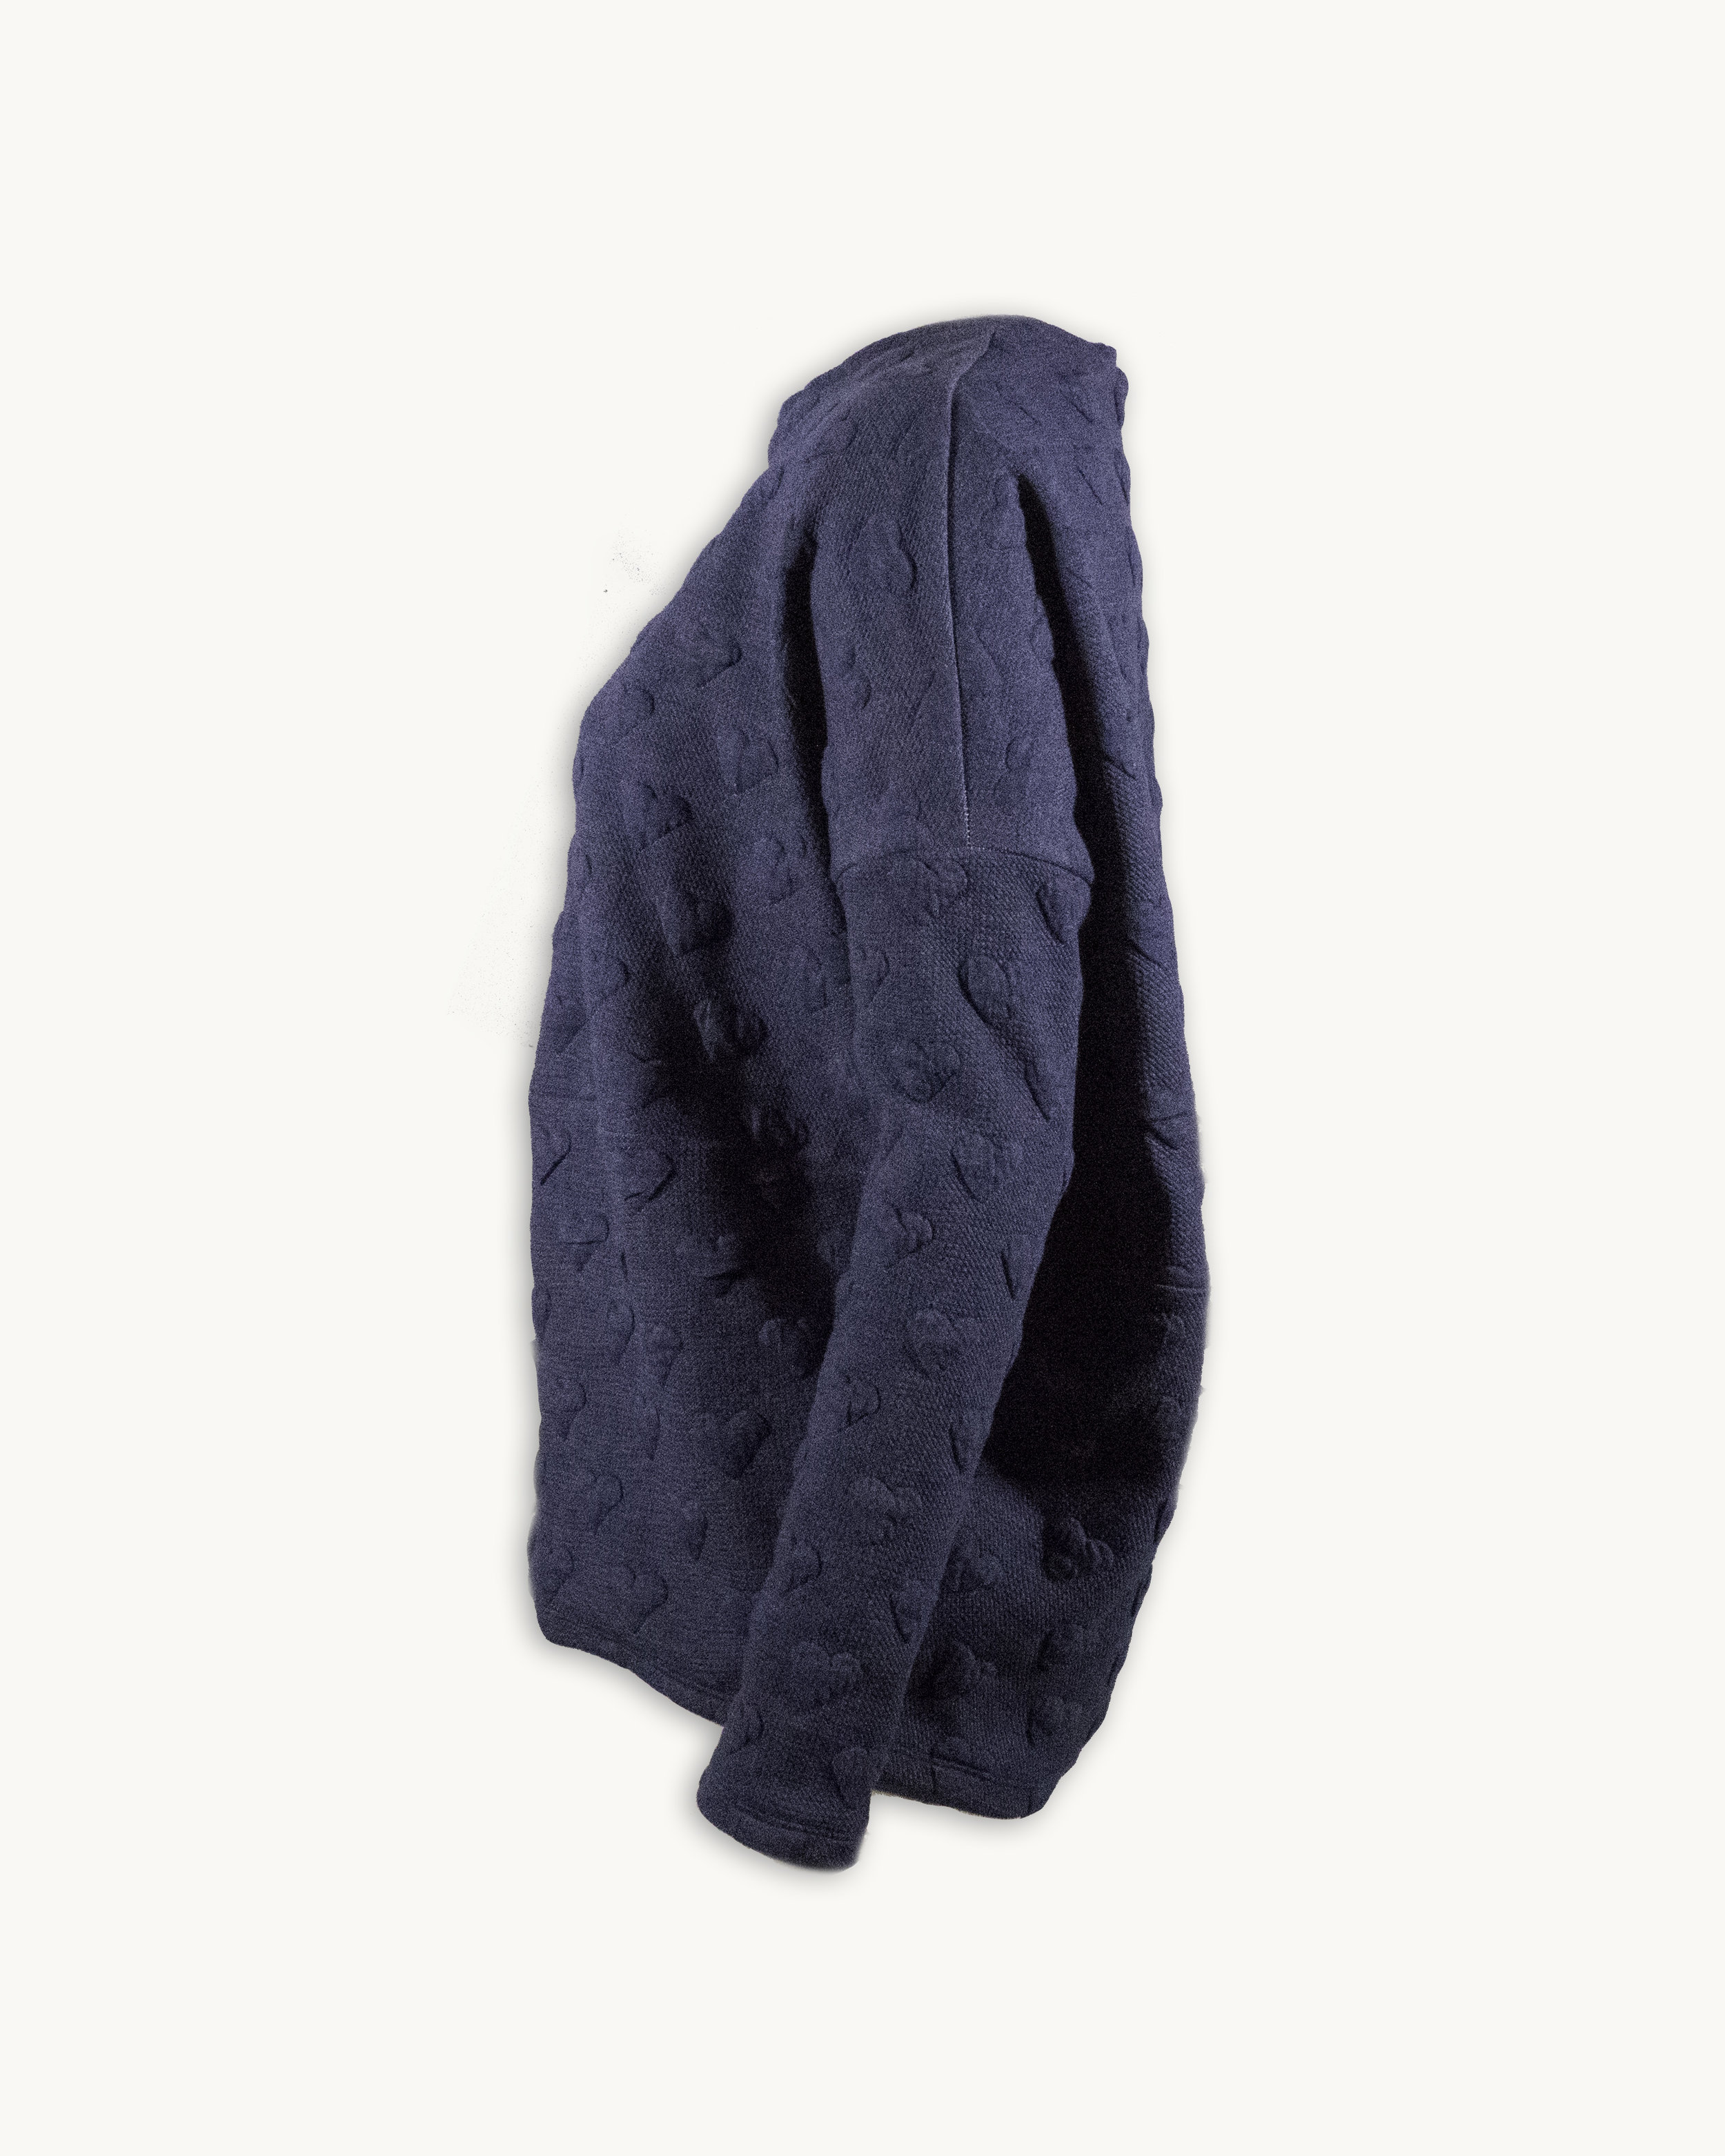 Side view of the Slate Blue color option in size Small.